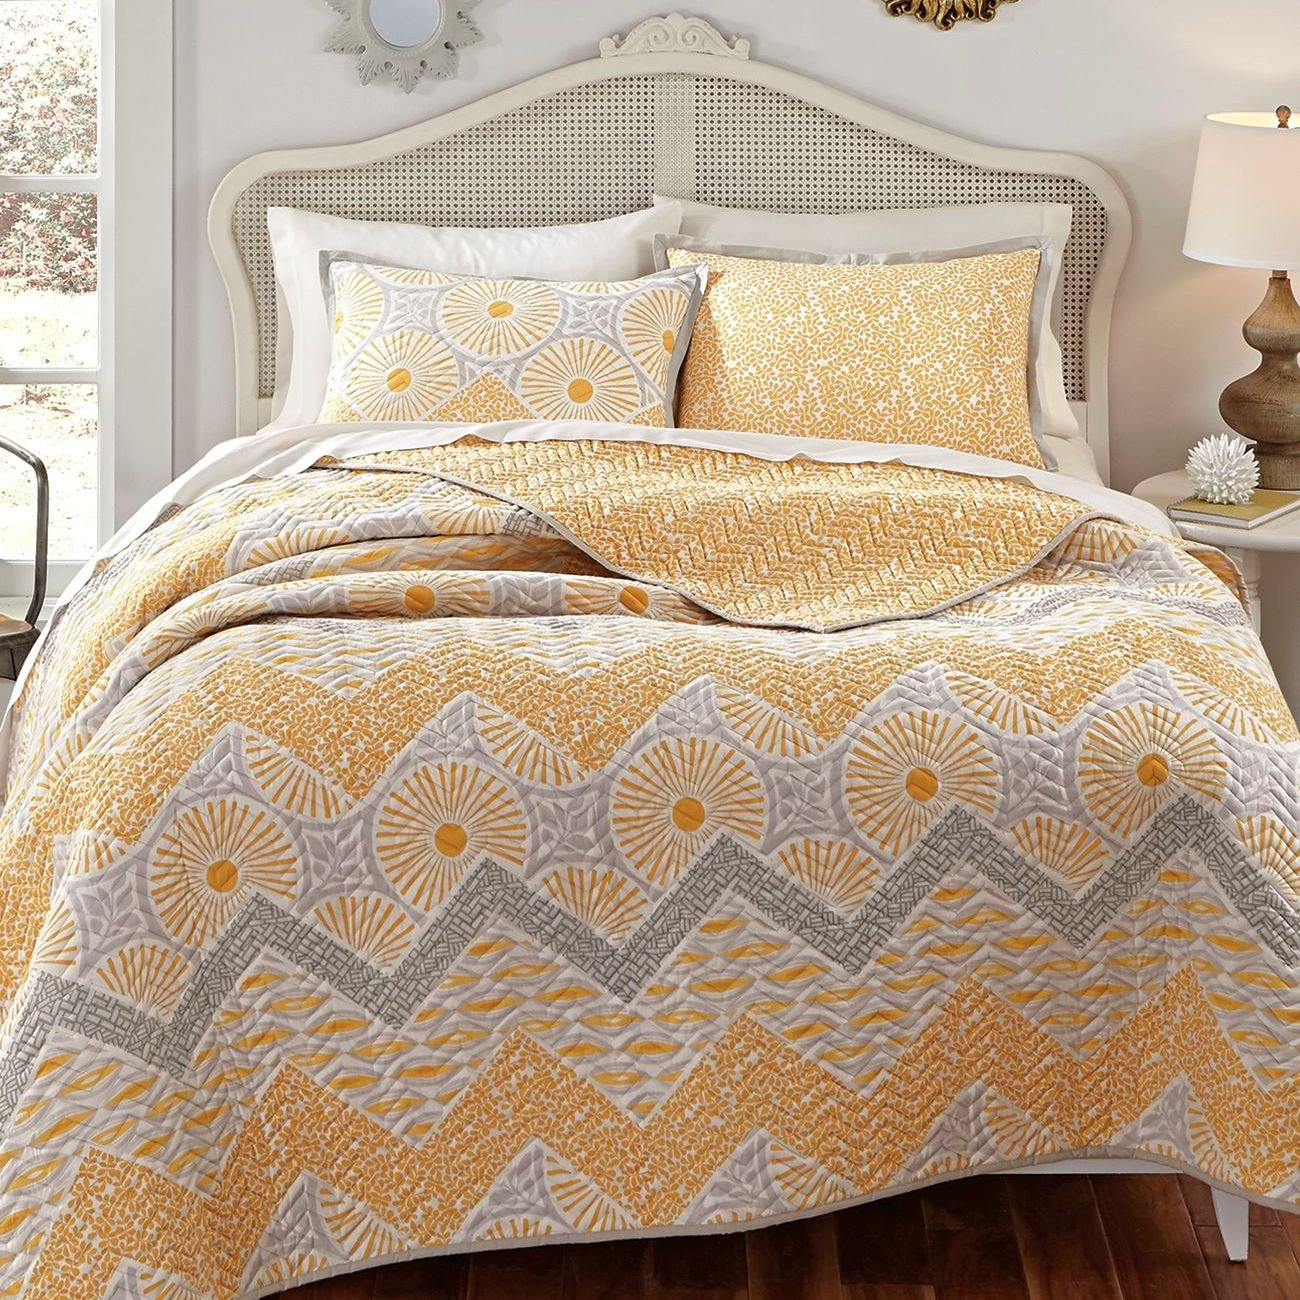 KD Spain Sunnyside Quilt Sham Set, Gold Yellow, Full/Queen